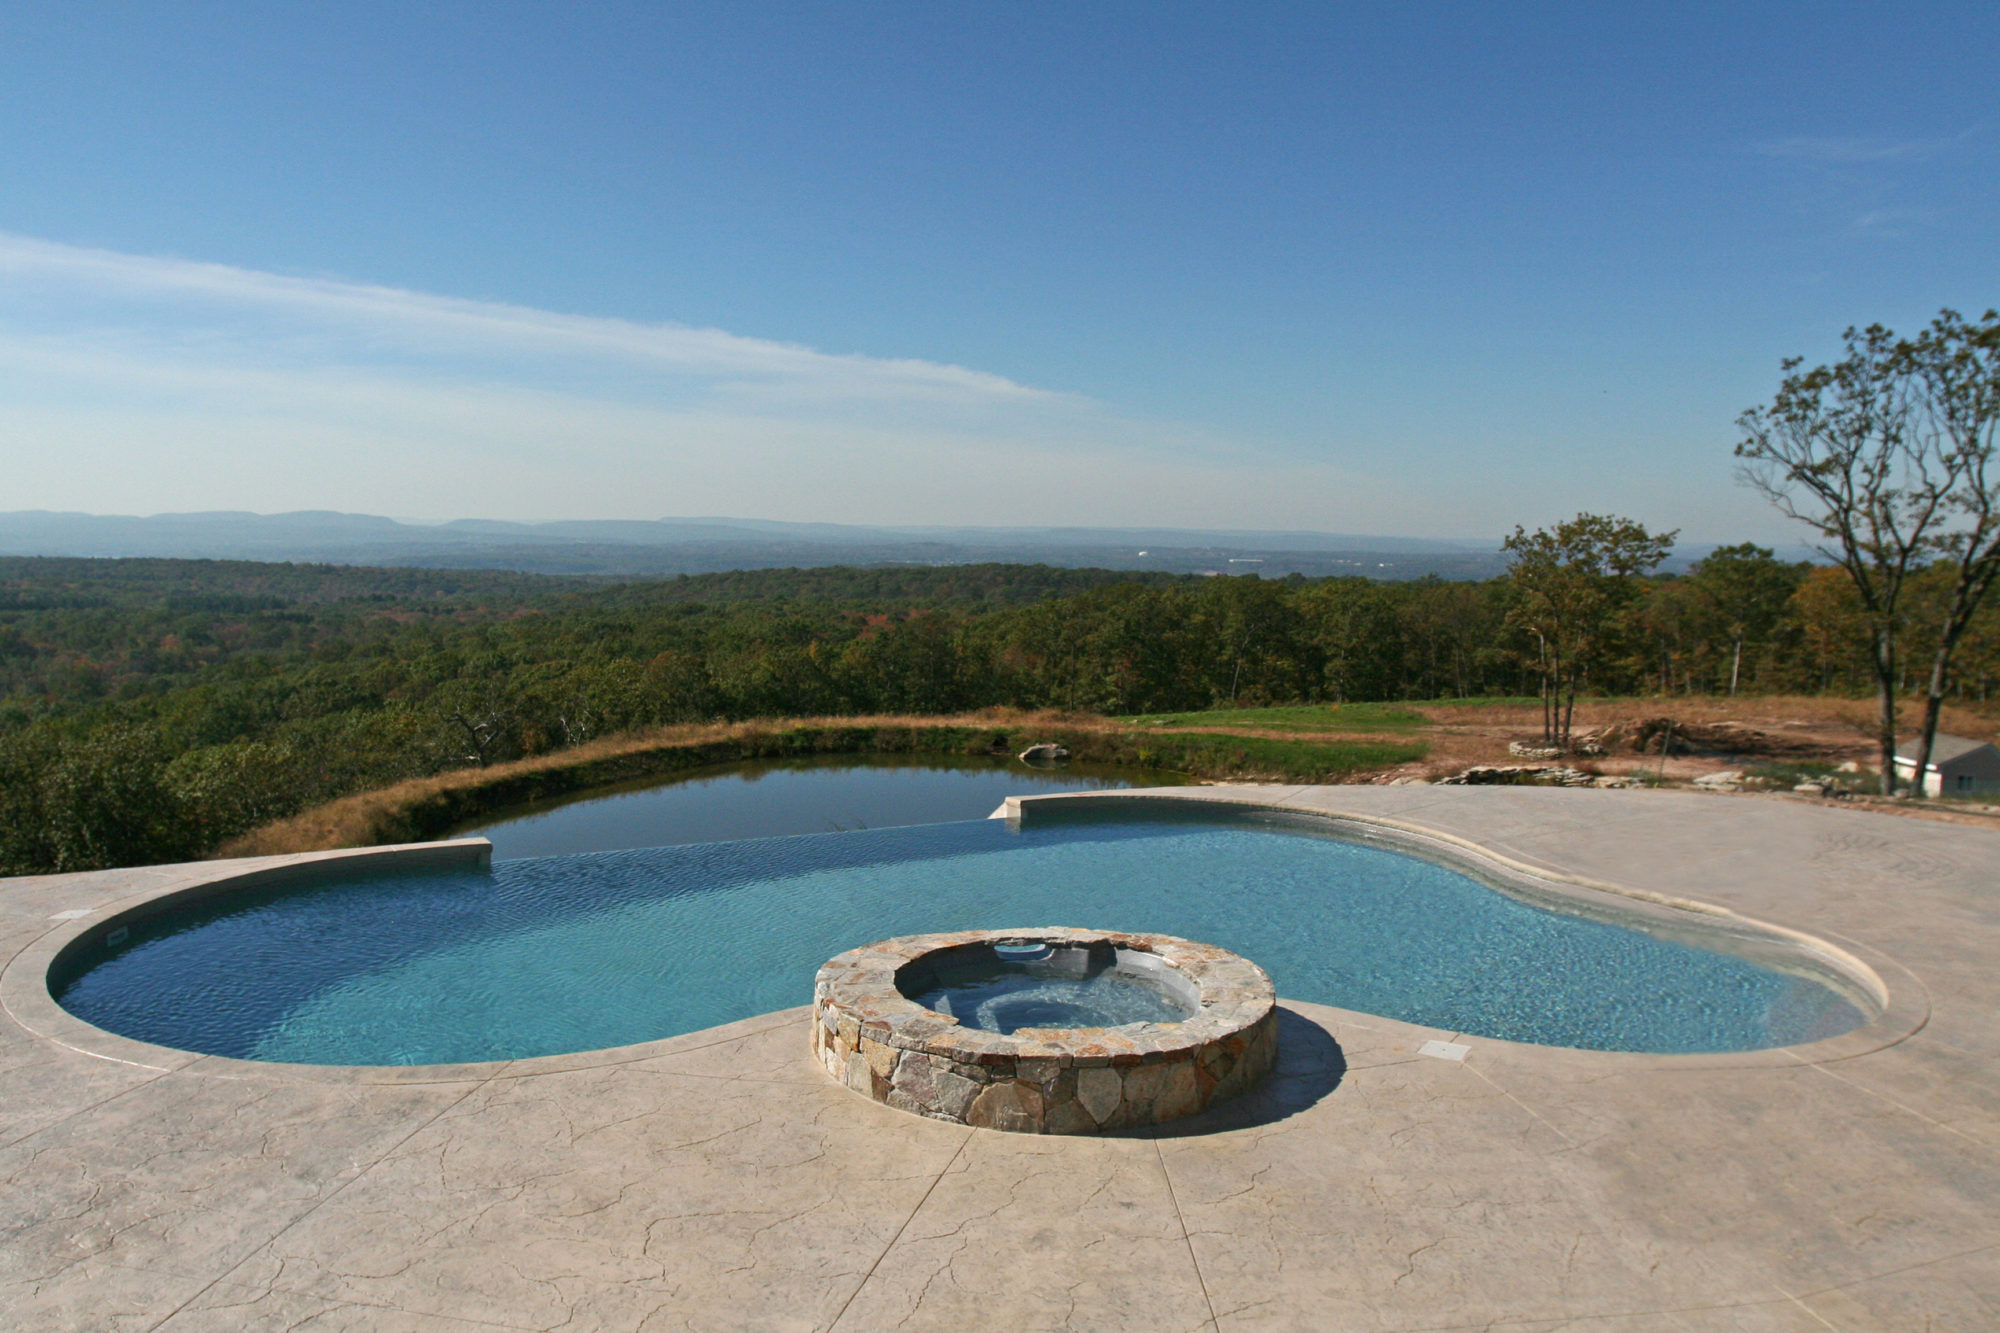 This is a photo of a custom inground swimming pool built by Julianos pools with a spillover spa.